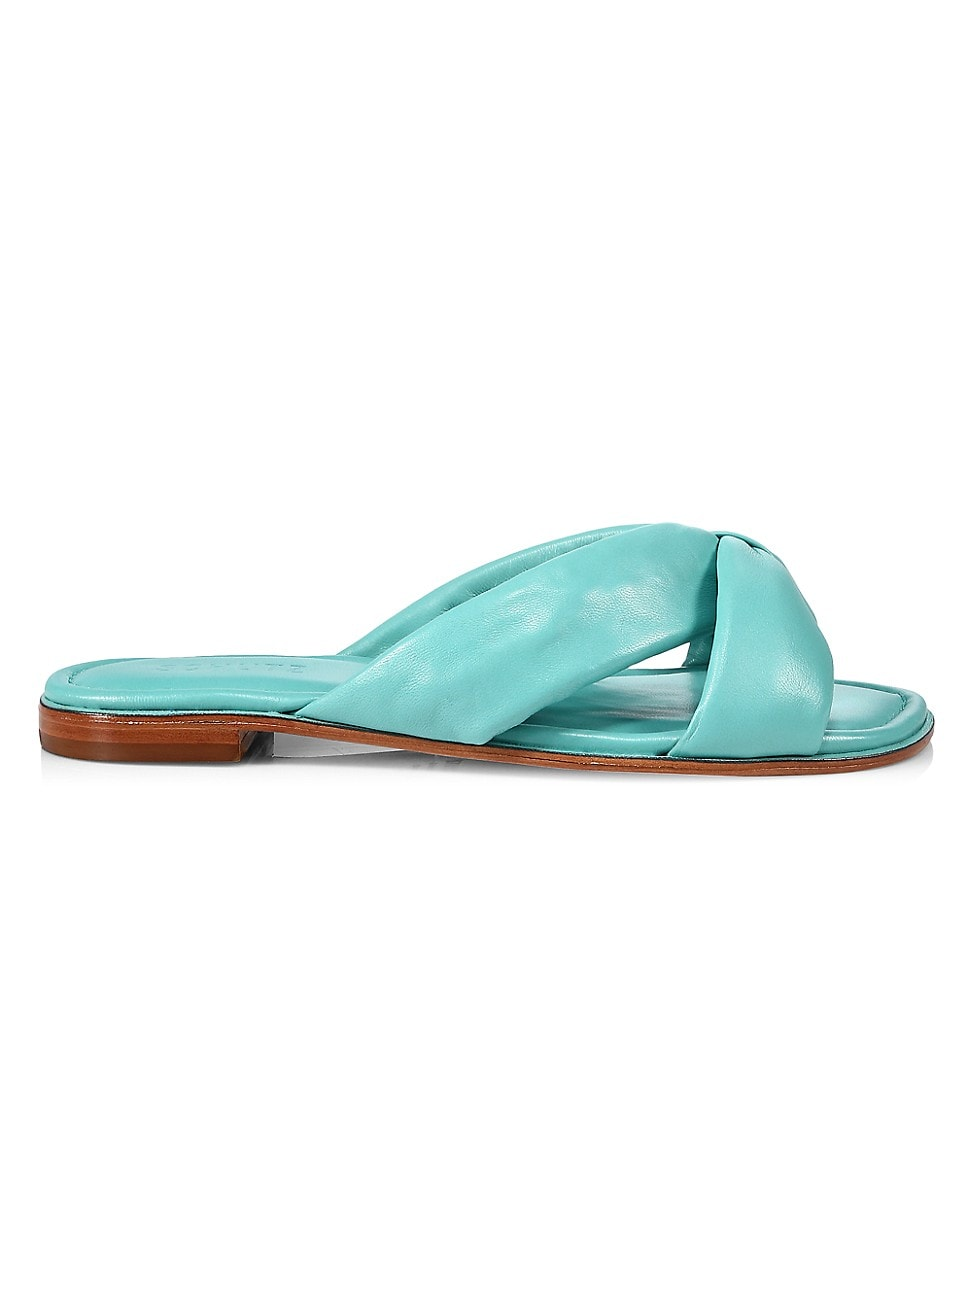 Schutz WOMEN'S FAIRY PADDED LEATHER SANDALS